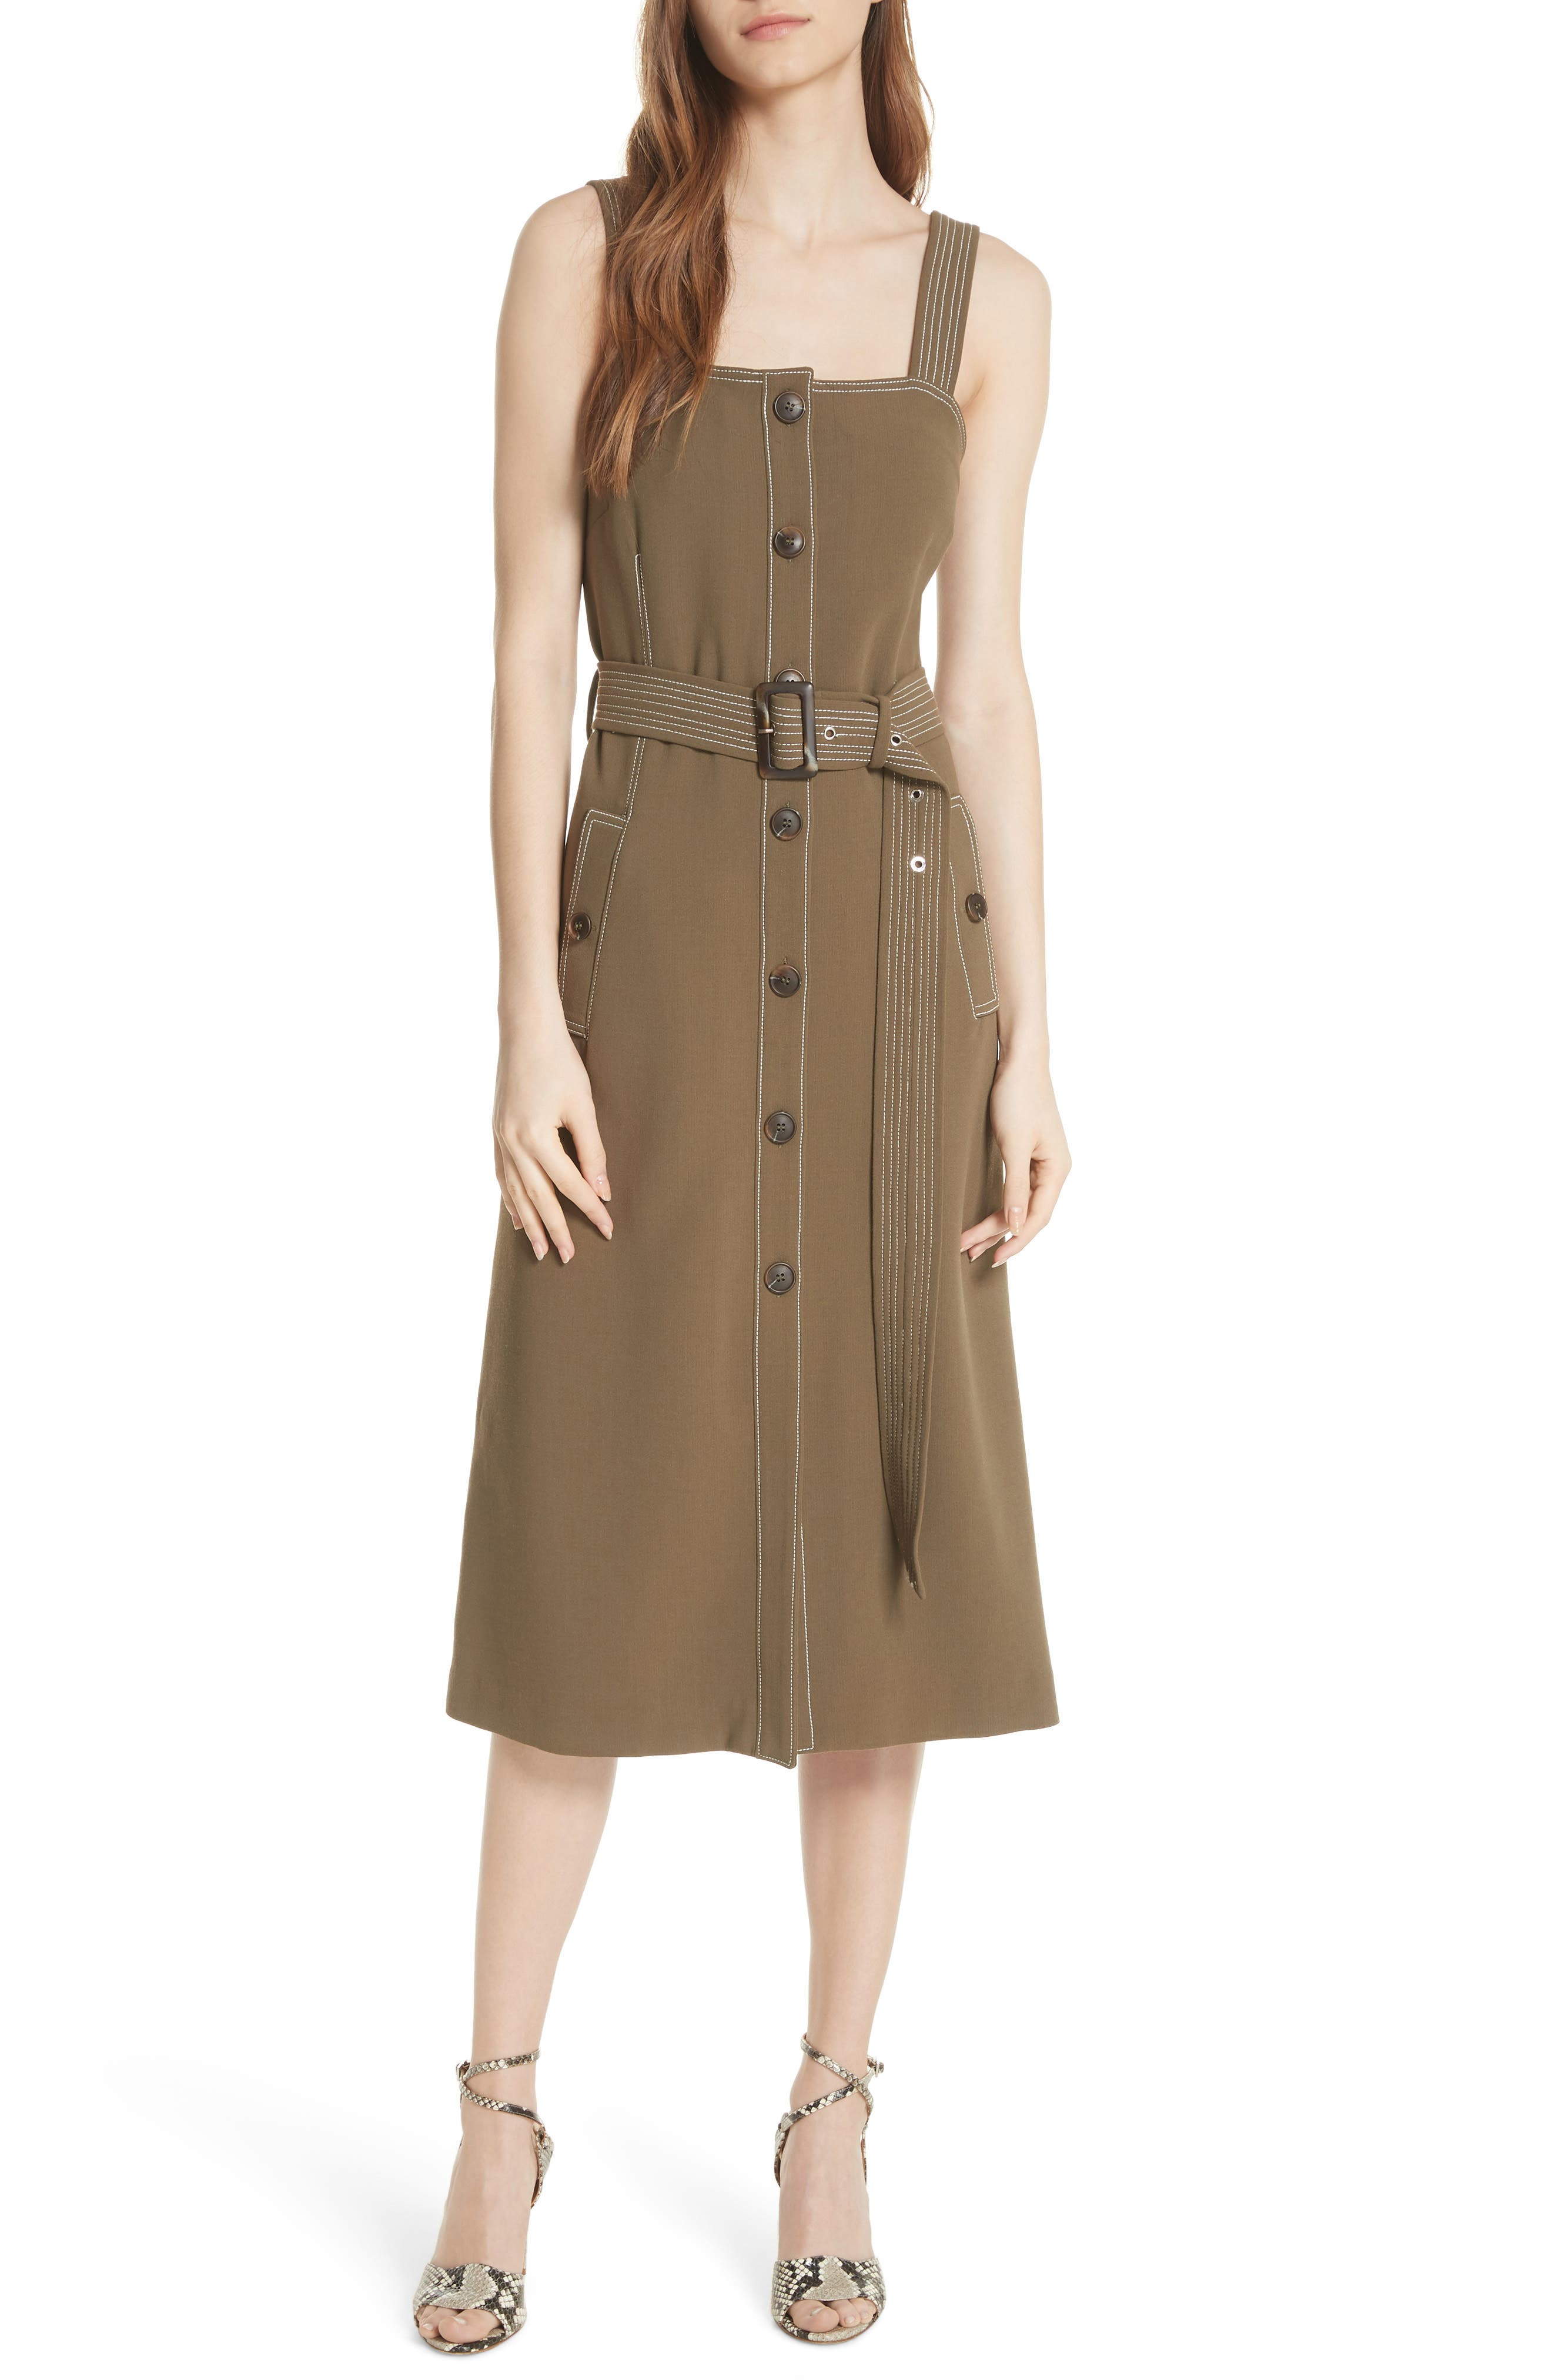 Adora Belted Dress,                             Main thumbnail 1, color,                             ARMY GREEN